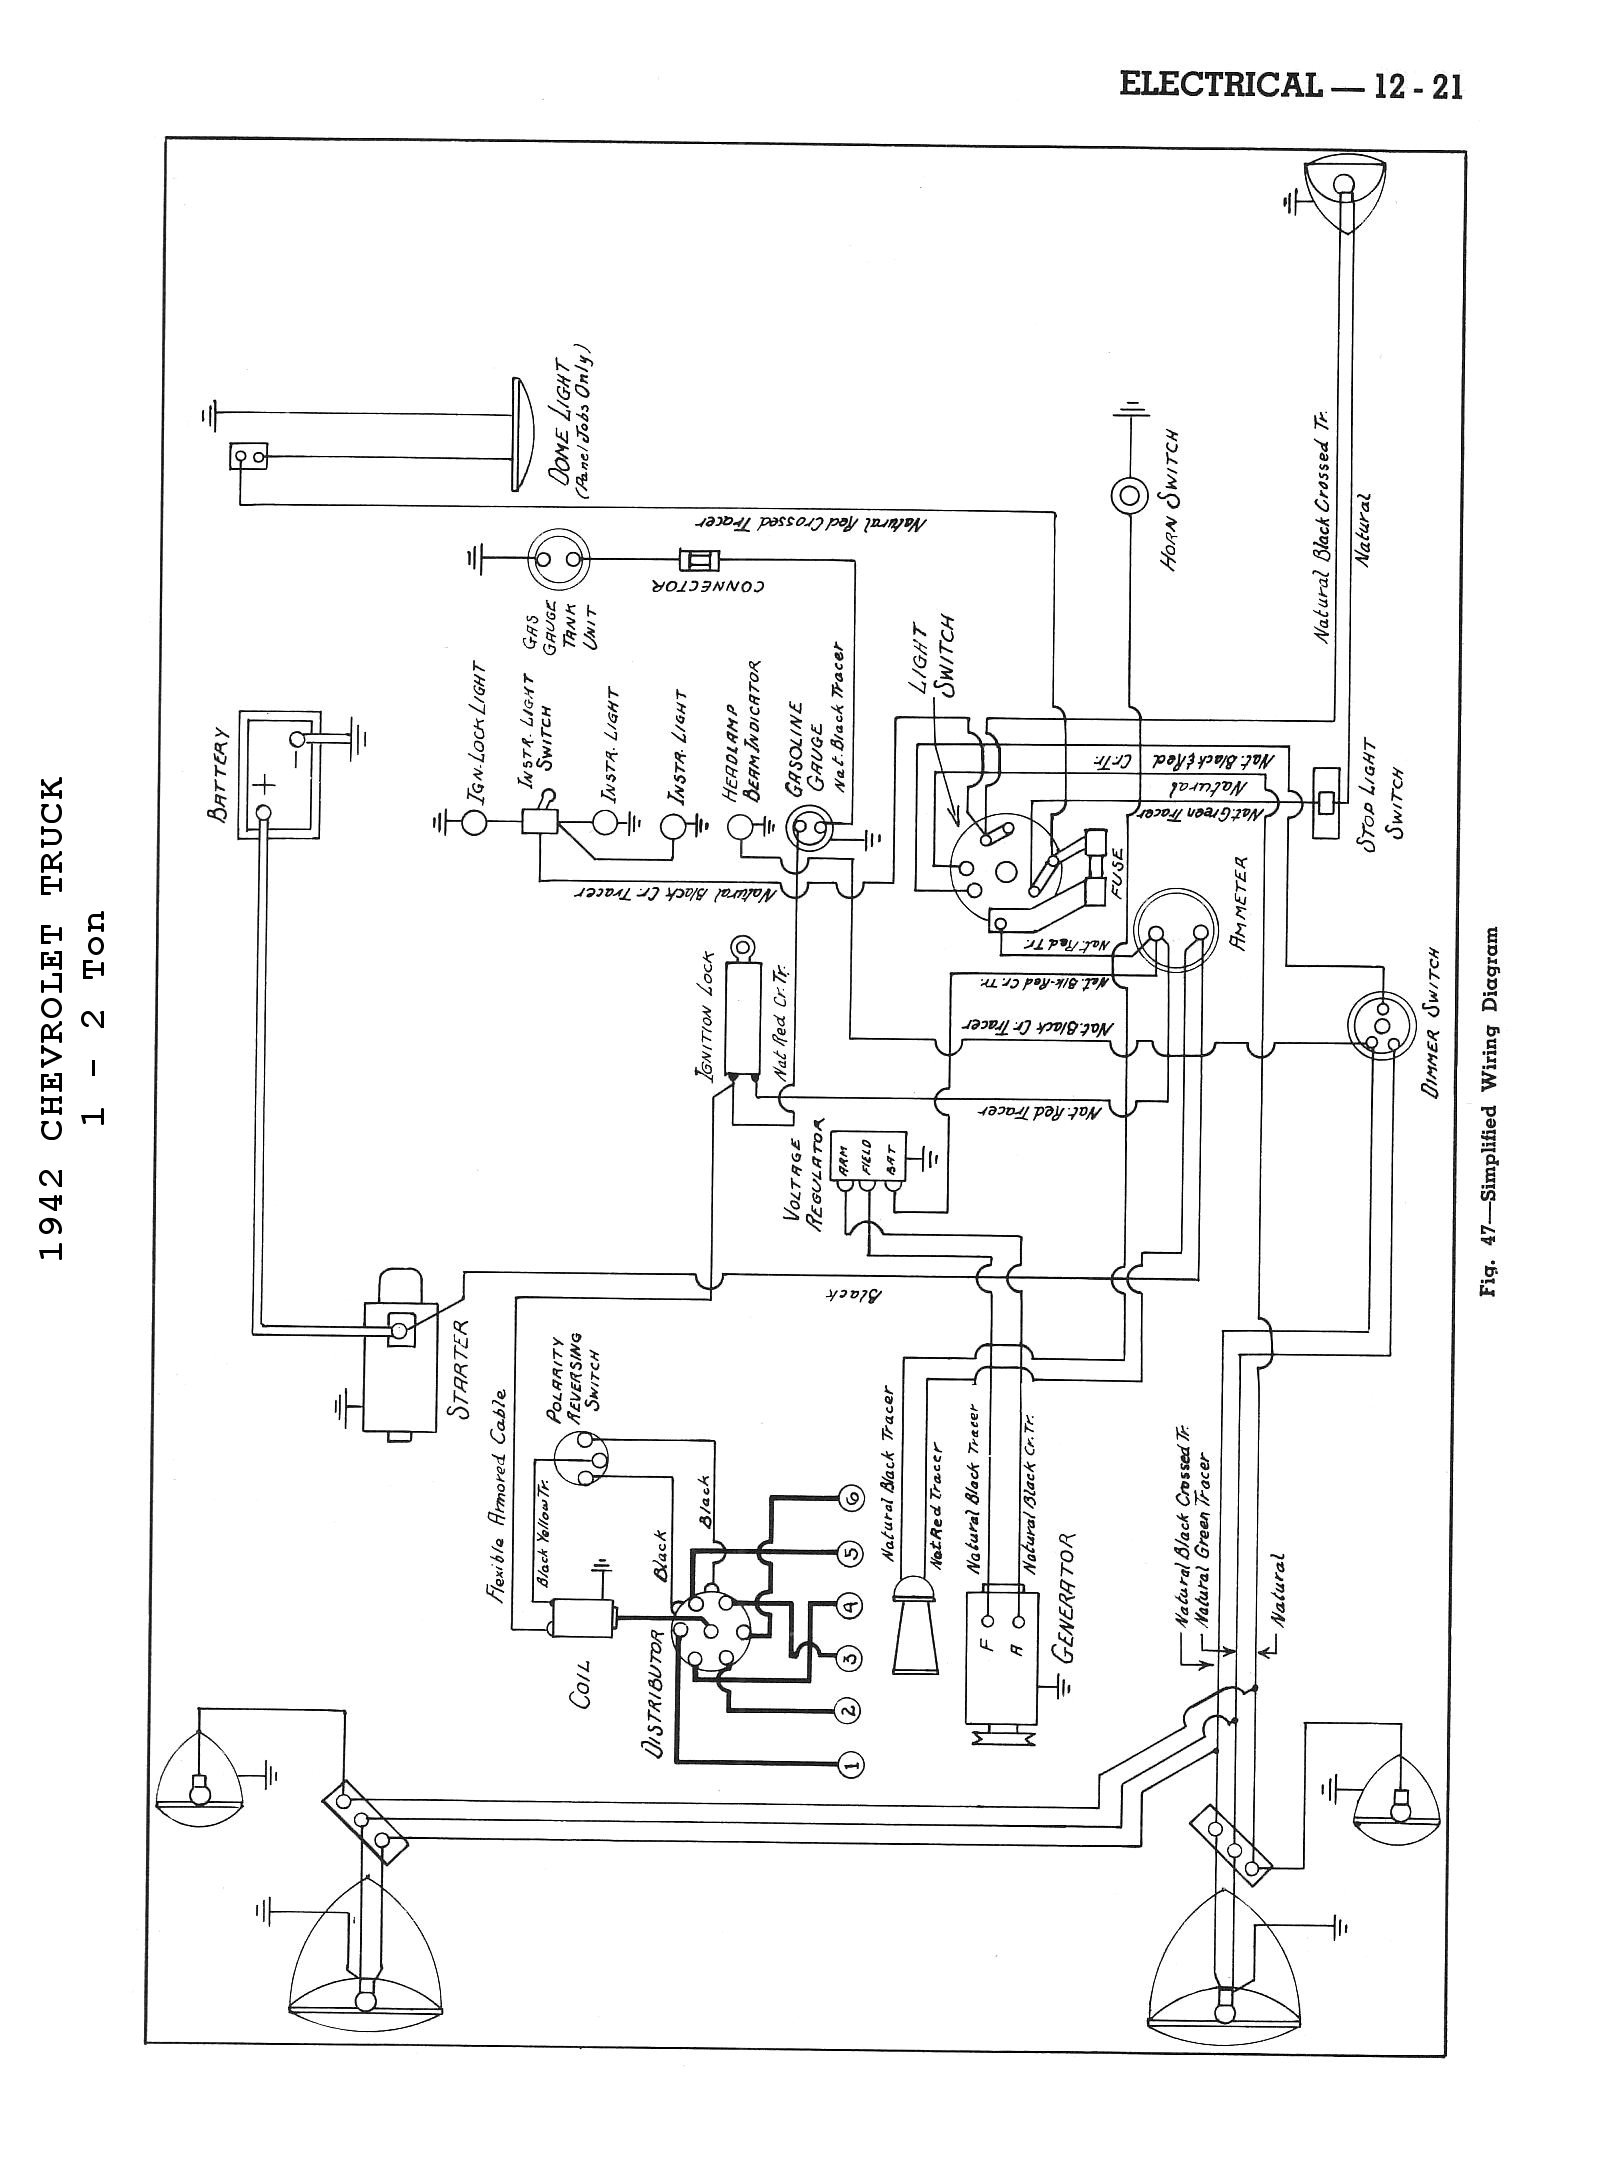 Chevy Wiring Diagrams Dodge Schematics 1934 Dodge Wiring Diagrams